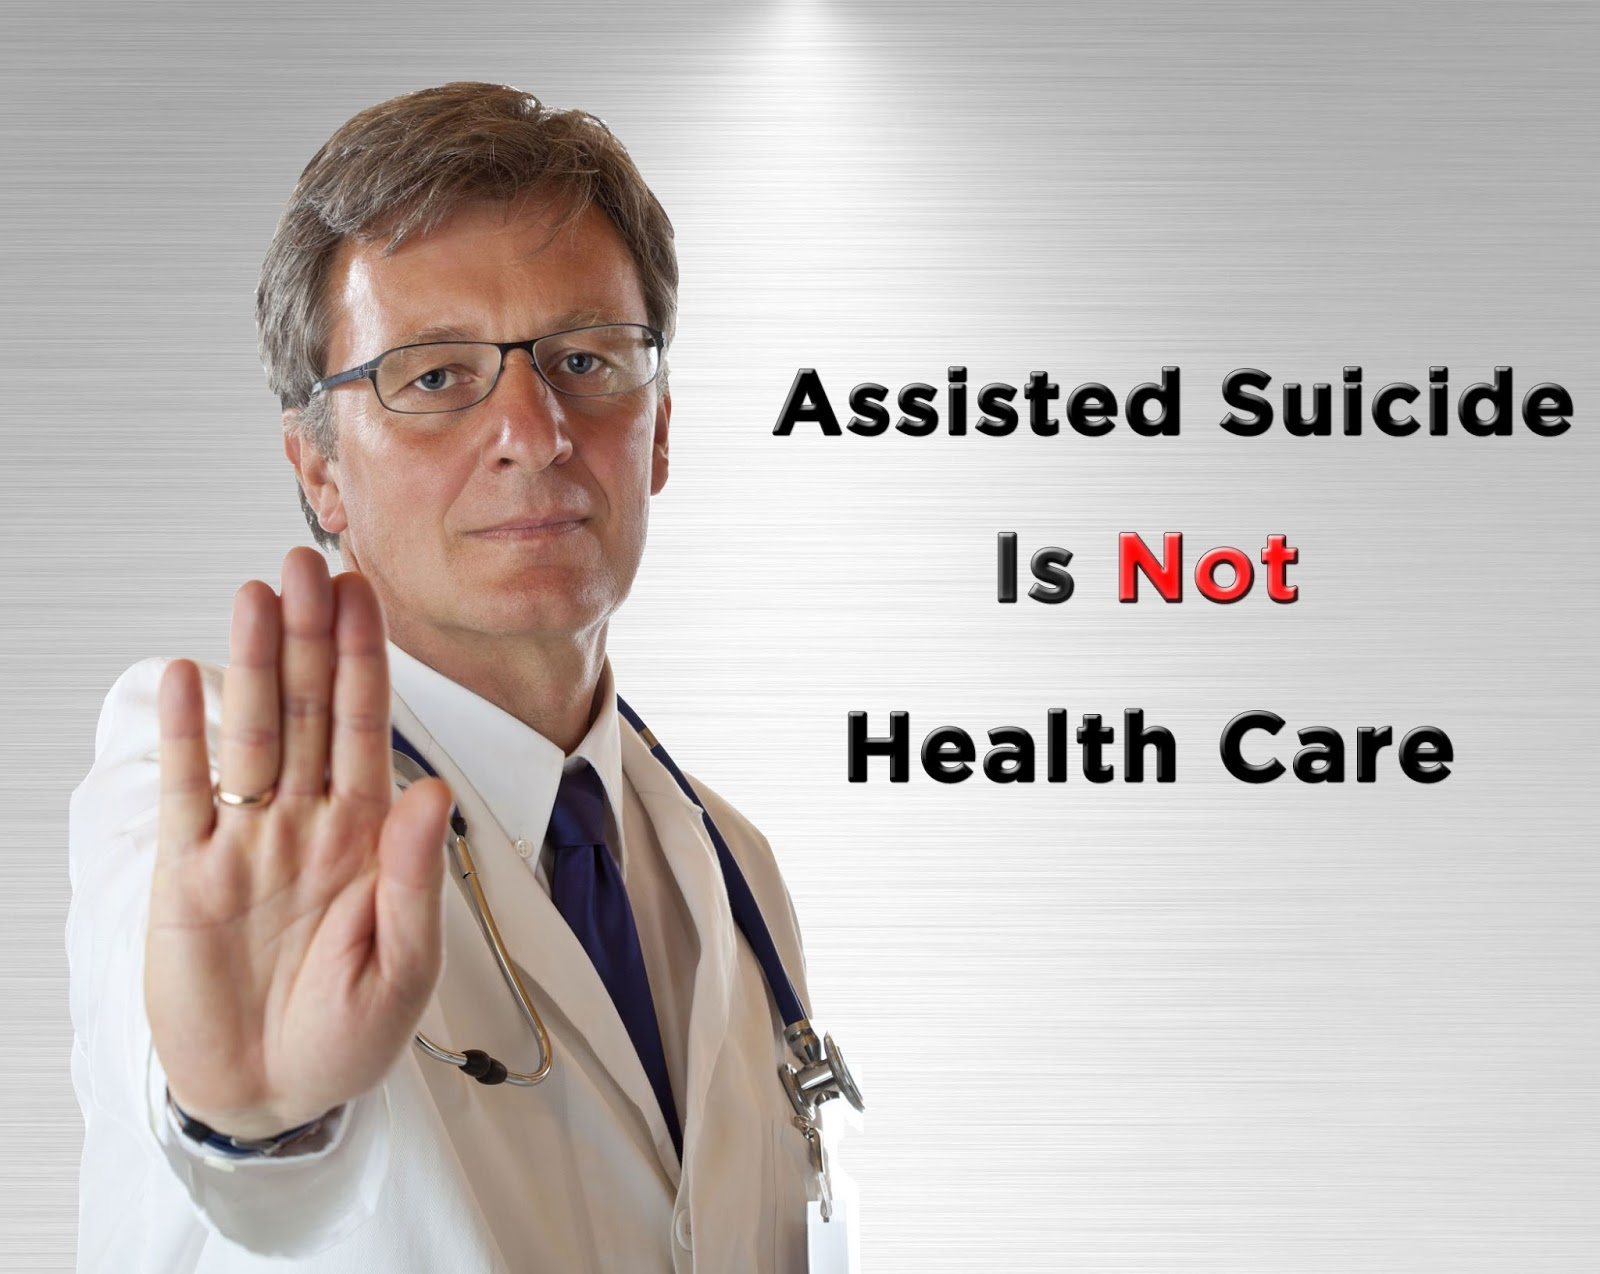 Assisted+suicide+is+not+health+care.jpg (1600×1274)